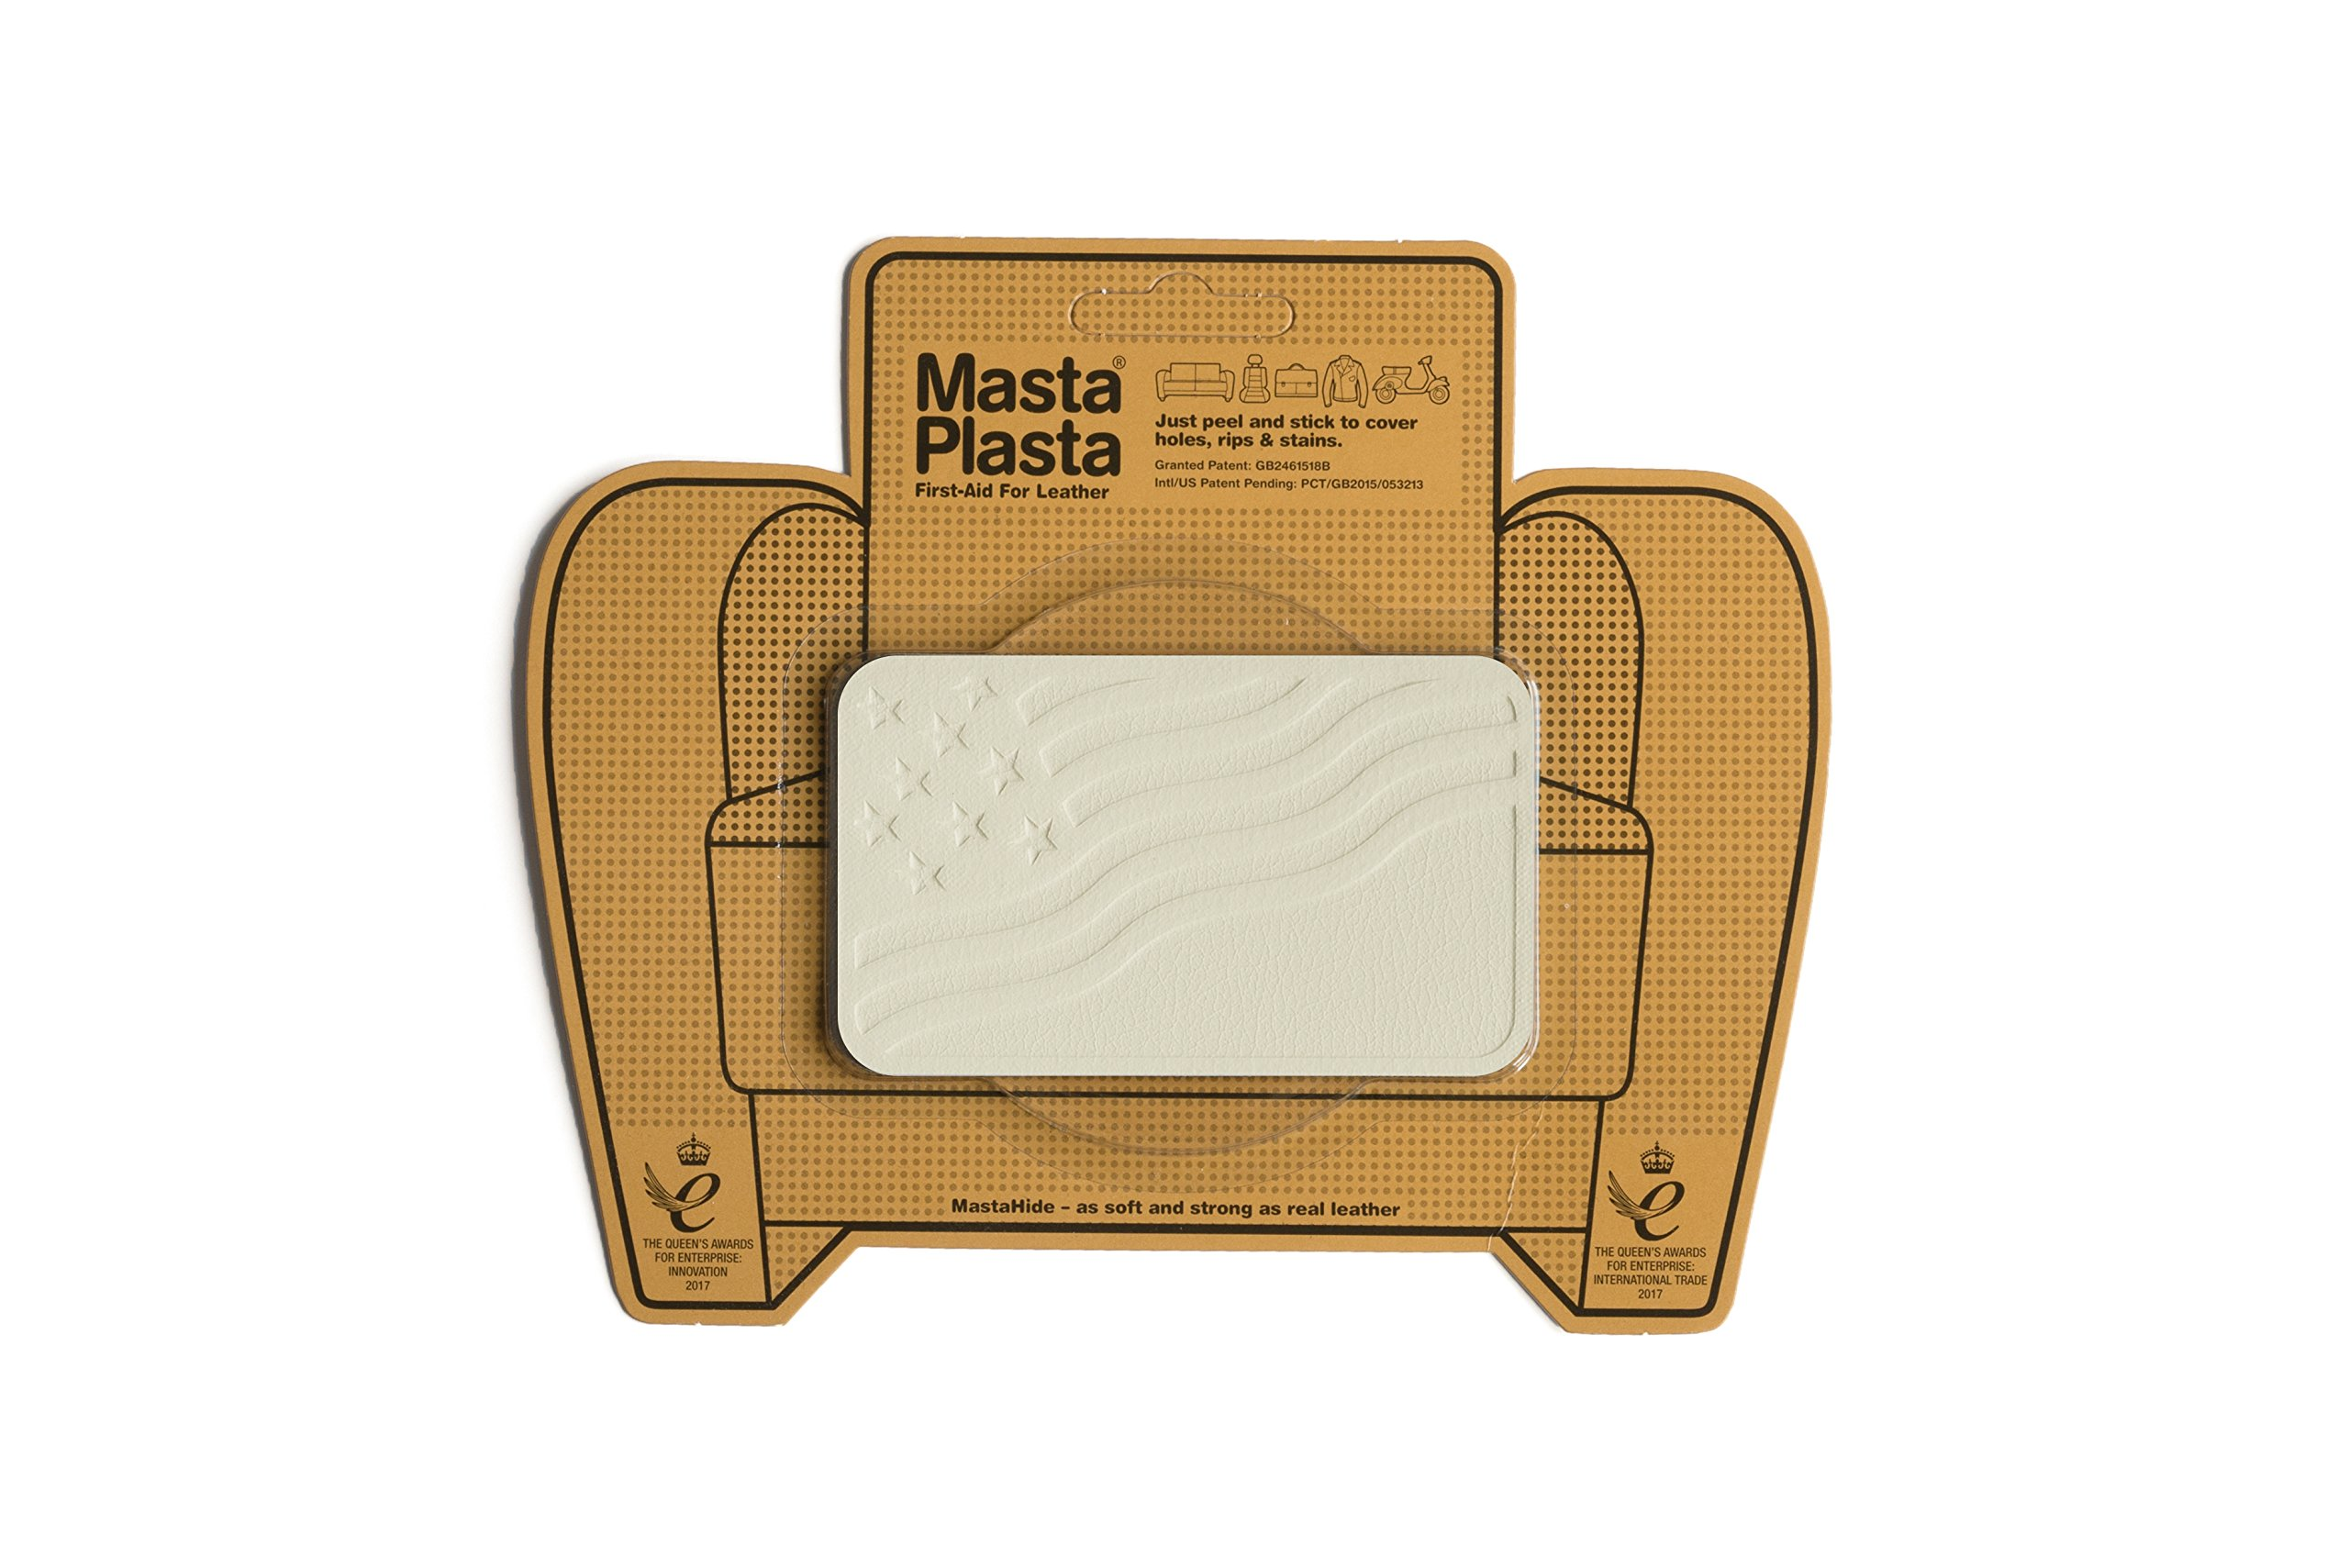 MastaPlasta, Leather Repair Patch, First-aid for Sofas, Car Seats, Handbags, Jackets, etc. Ivory Color, Flag 4-inch by 2.4-inch, Designs Vary